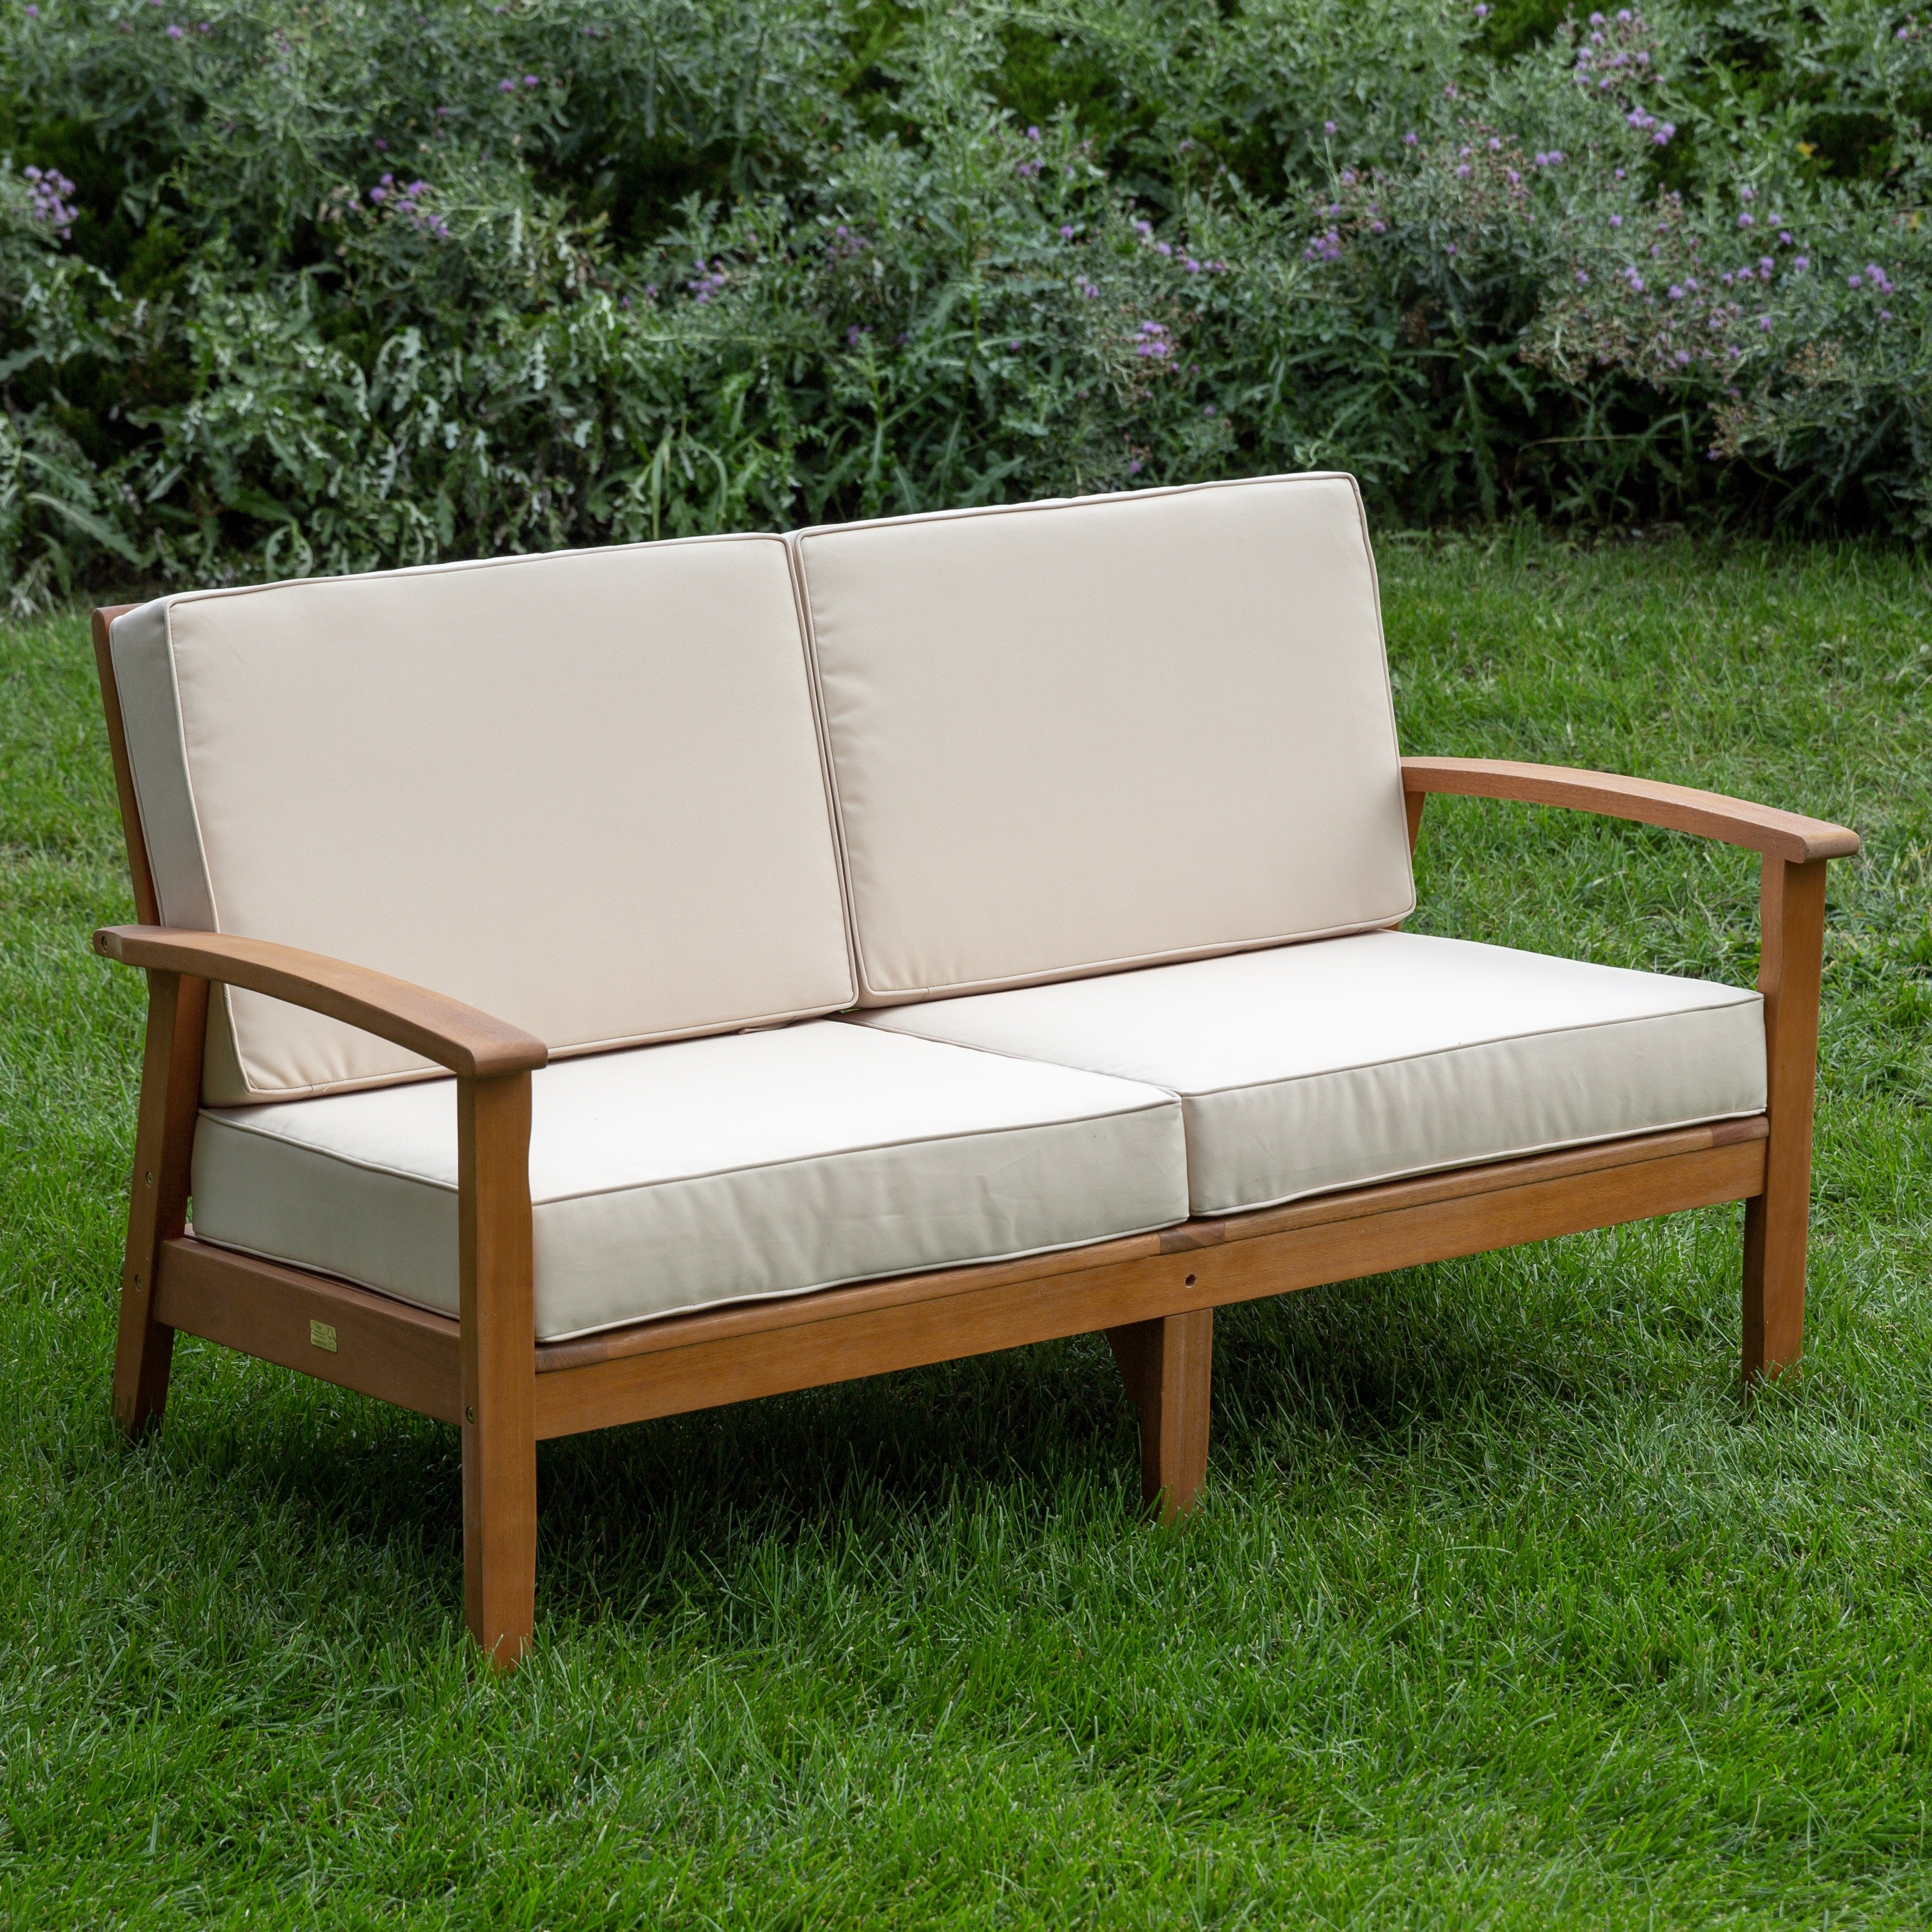 Most Recent Bullock Outdoor Wooden Loveseats With Cushions In Buecker Deep Seat Settee With Cushions (View 9 of 20)